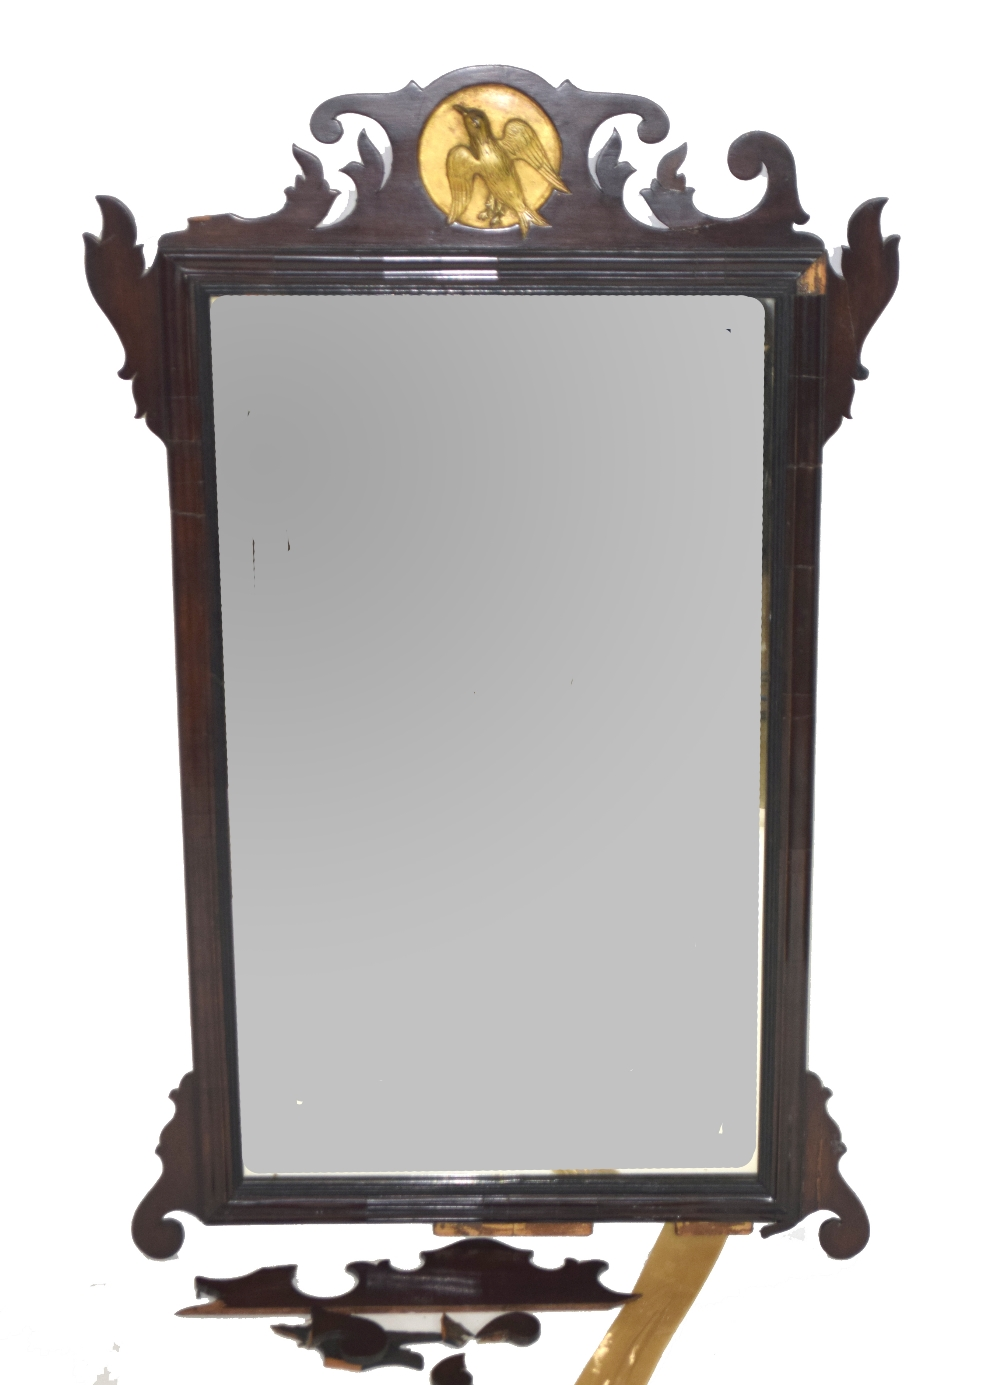 19th century wall mirror in mahogany fret work frame with central gilded roundel detail with bird,